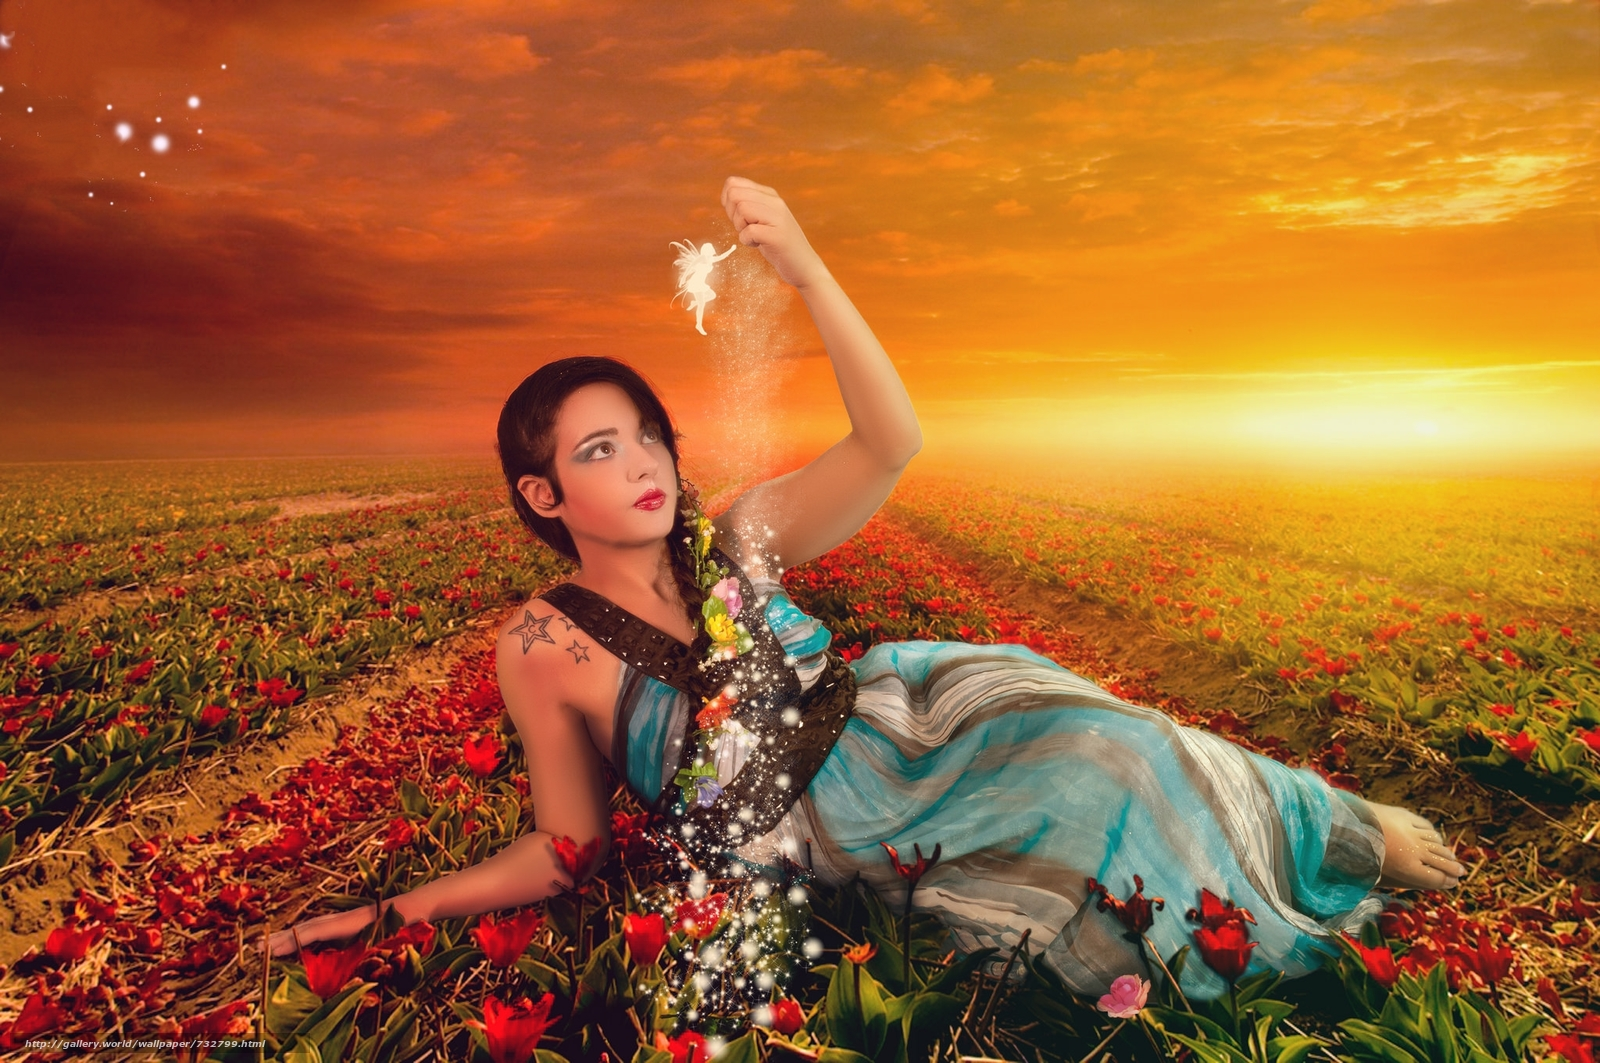 sunset, field, flowers, girl, beautiful girl, beauty, angel, fairy, Fiction